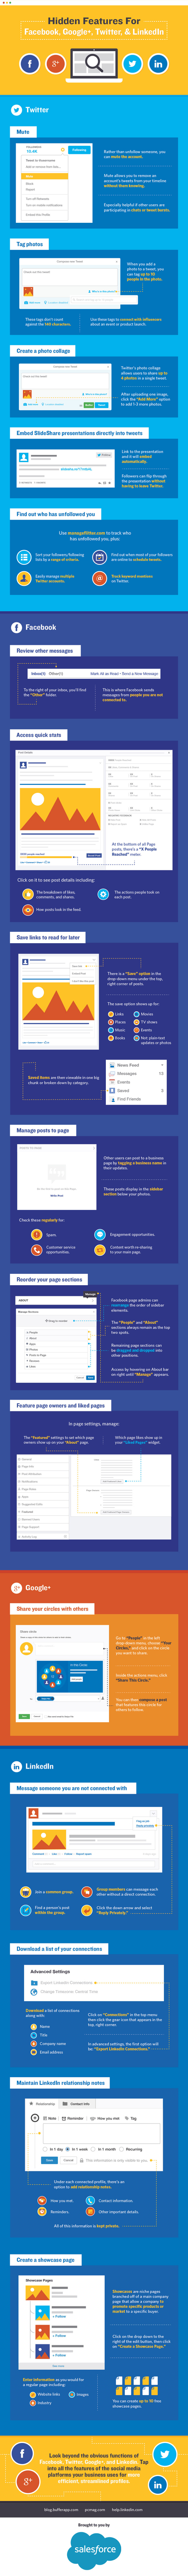 The Useful Features You Might Not Know About on Facebook, LinkedIn and More #Infographic via @MarketingHits | Alchemy of Business, Life & Technology | Scoop.it